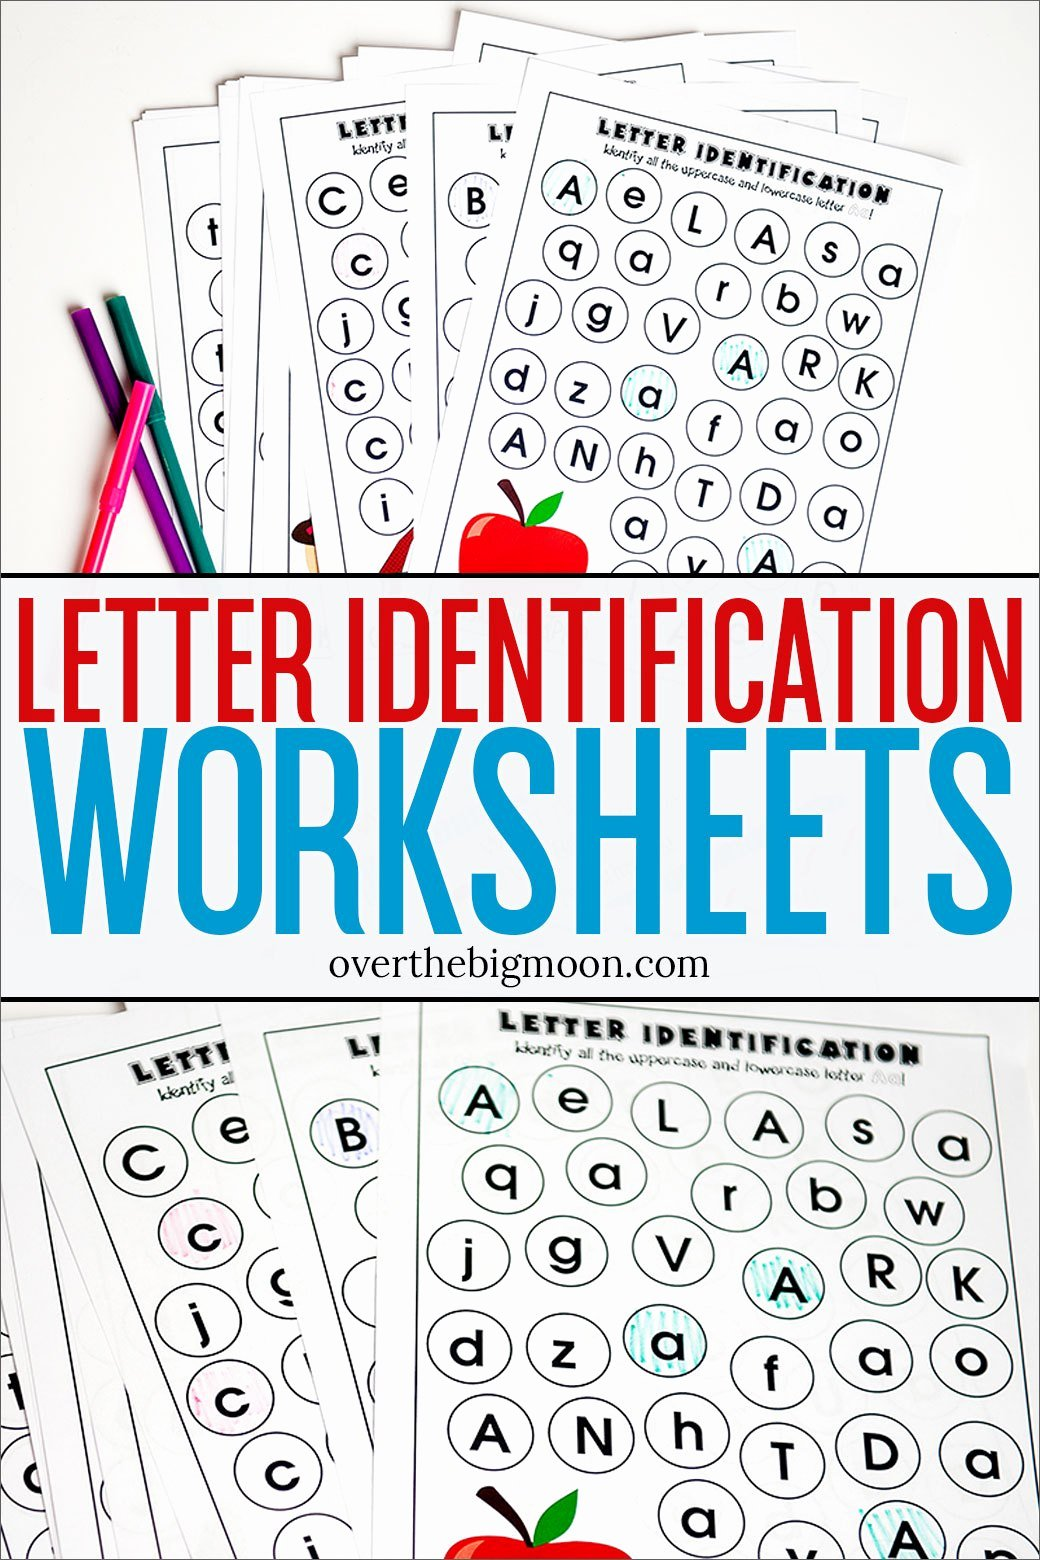 Alphabet Recognition Worksheets for Preschoolers Lovely Full Alphabet Letter Identification Printables